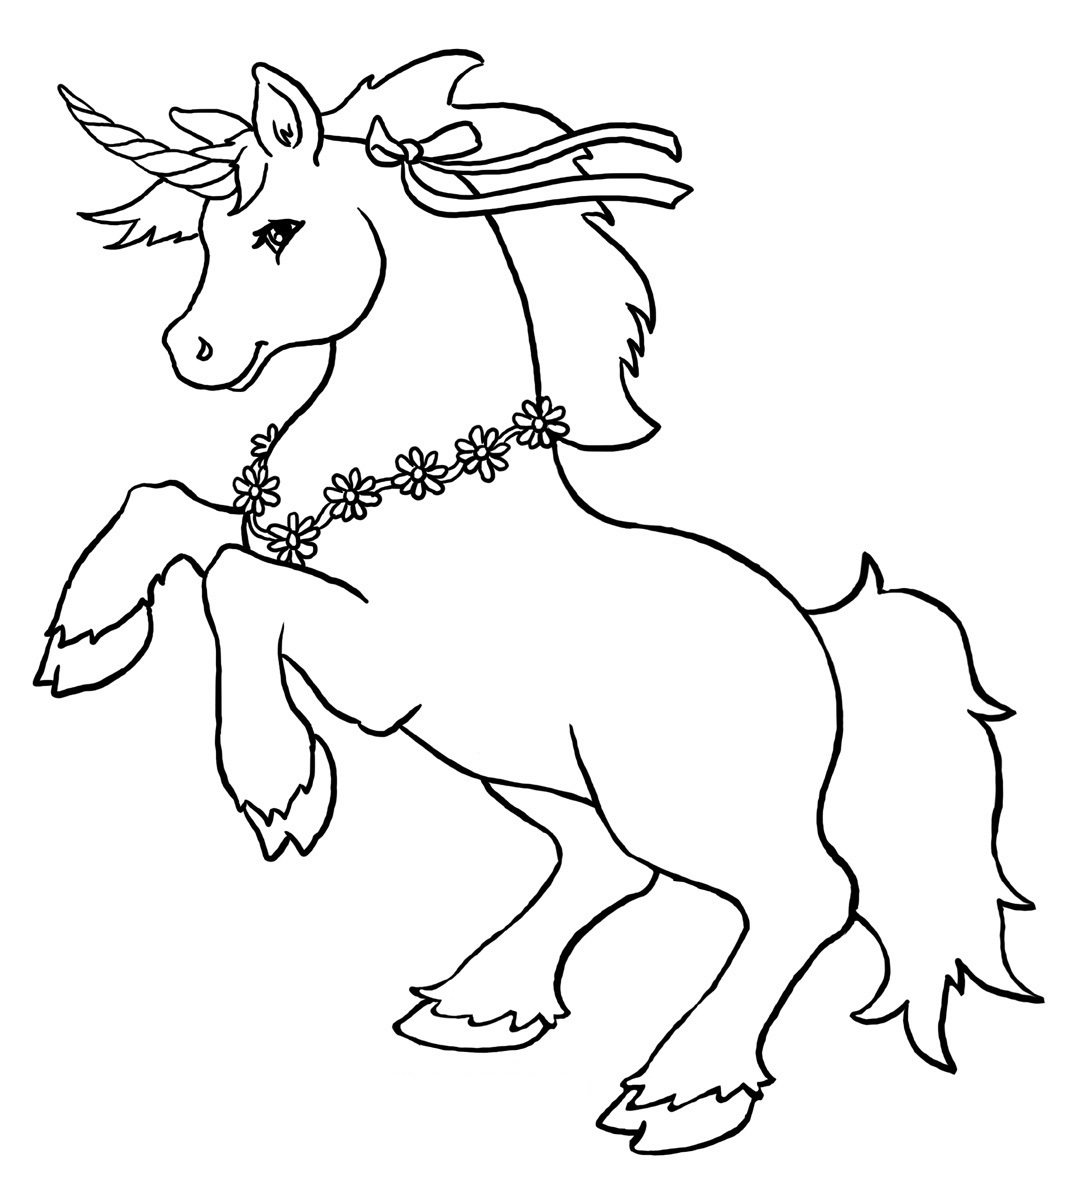 Coloring pages of unicorns - Unicorn Color Page Cute